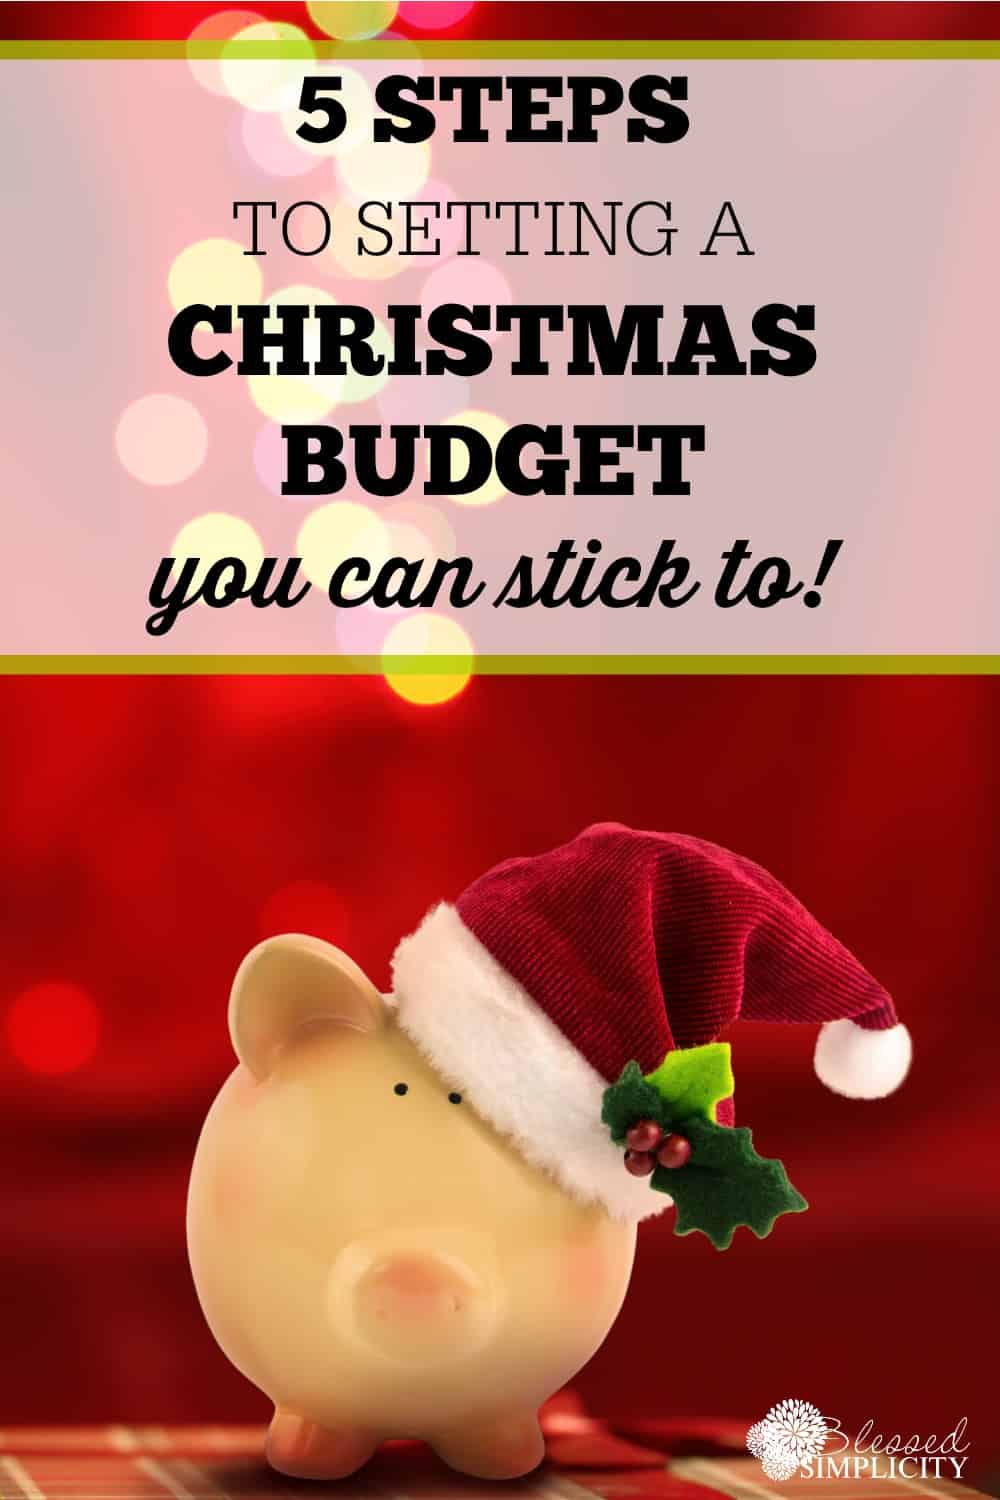 Free printable christmas budget worksheets! Set your chistmas budget and stick to it!